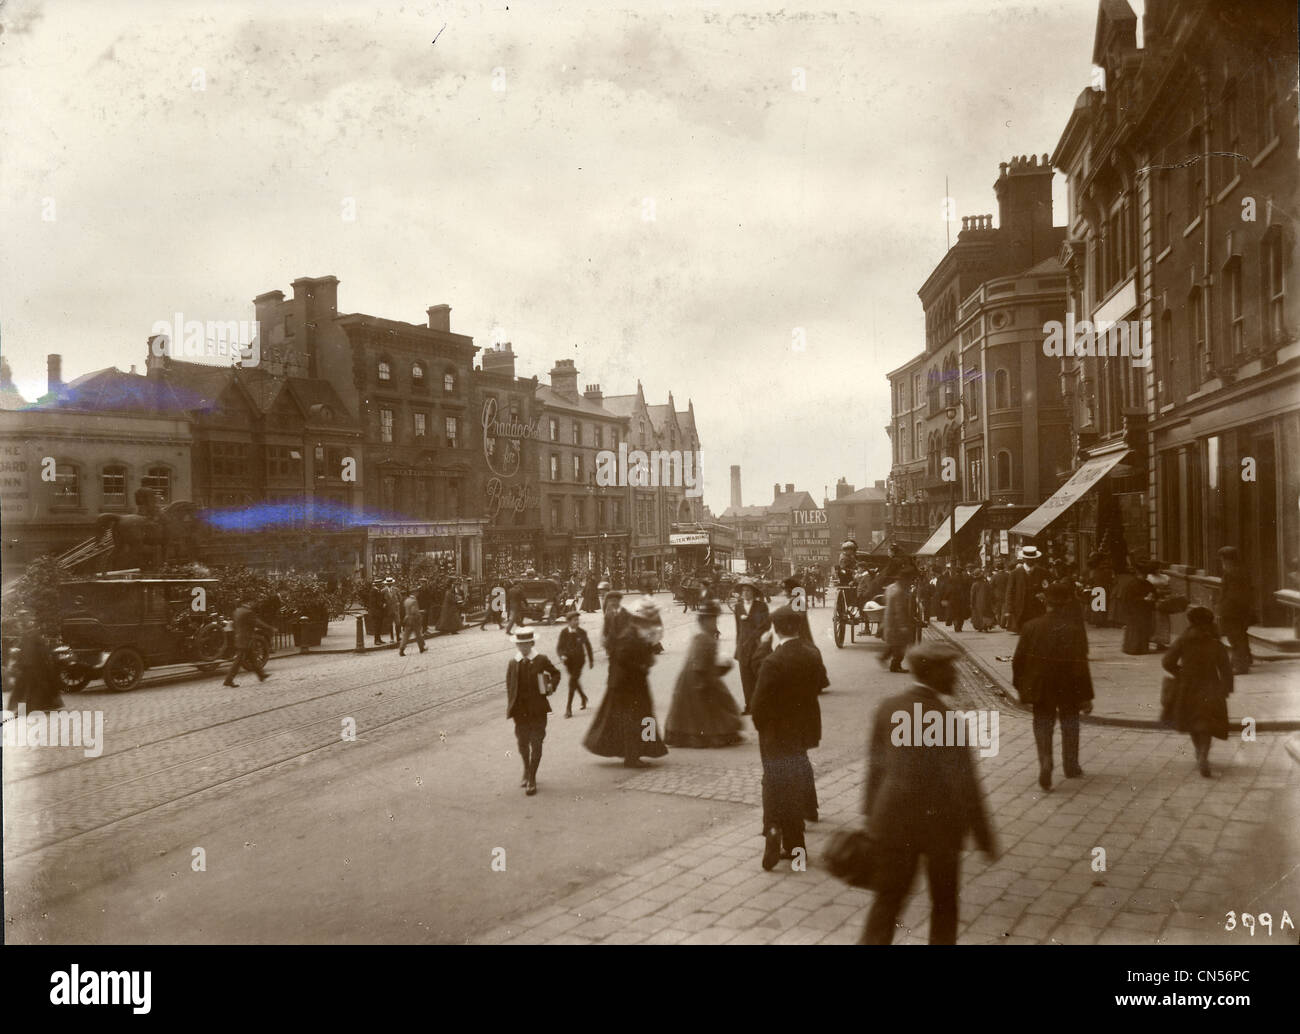 Queen Square, Wolverhampton, early 20th century. - Stock Image